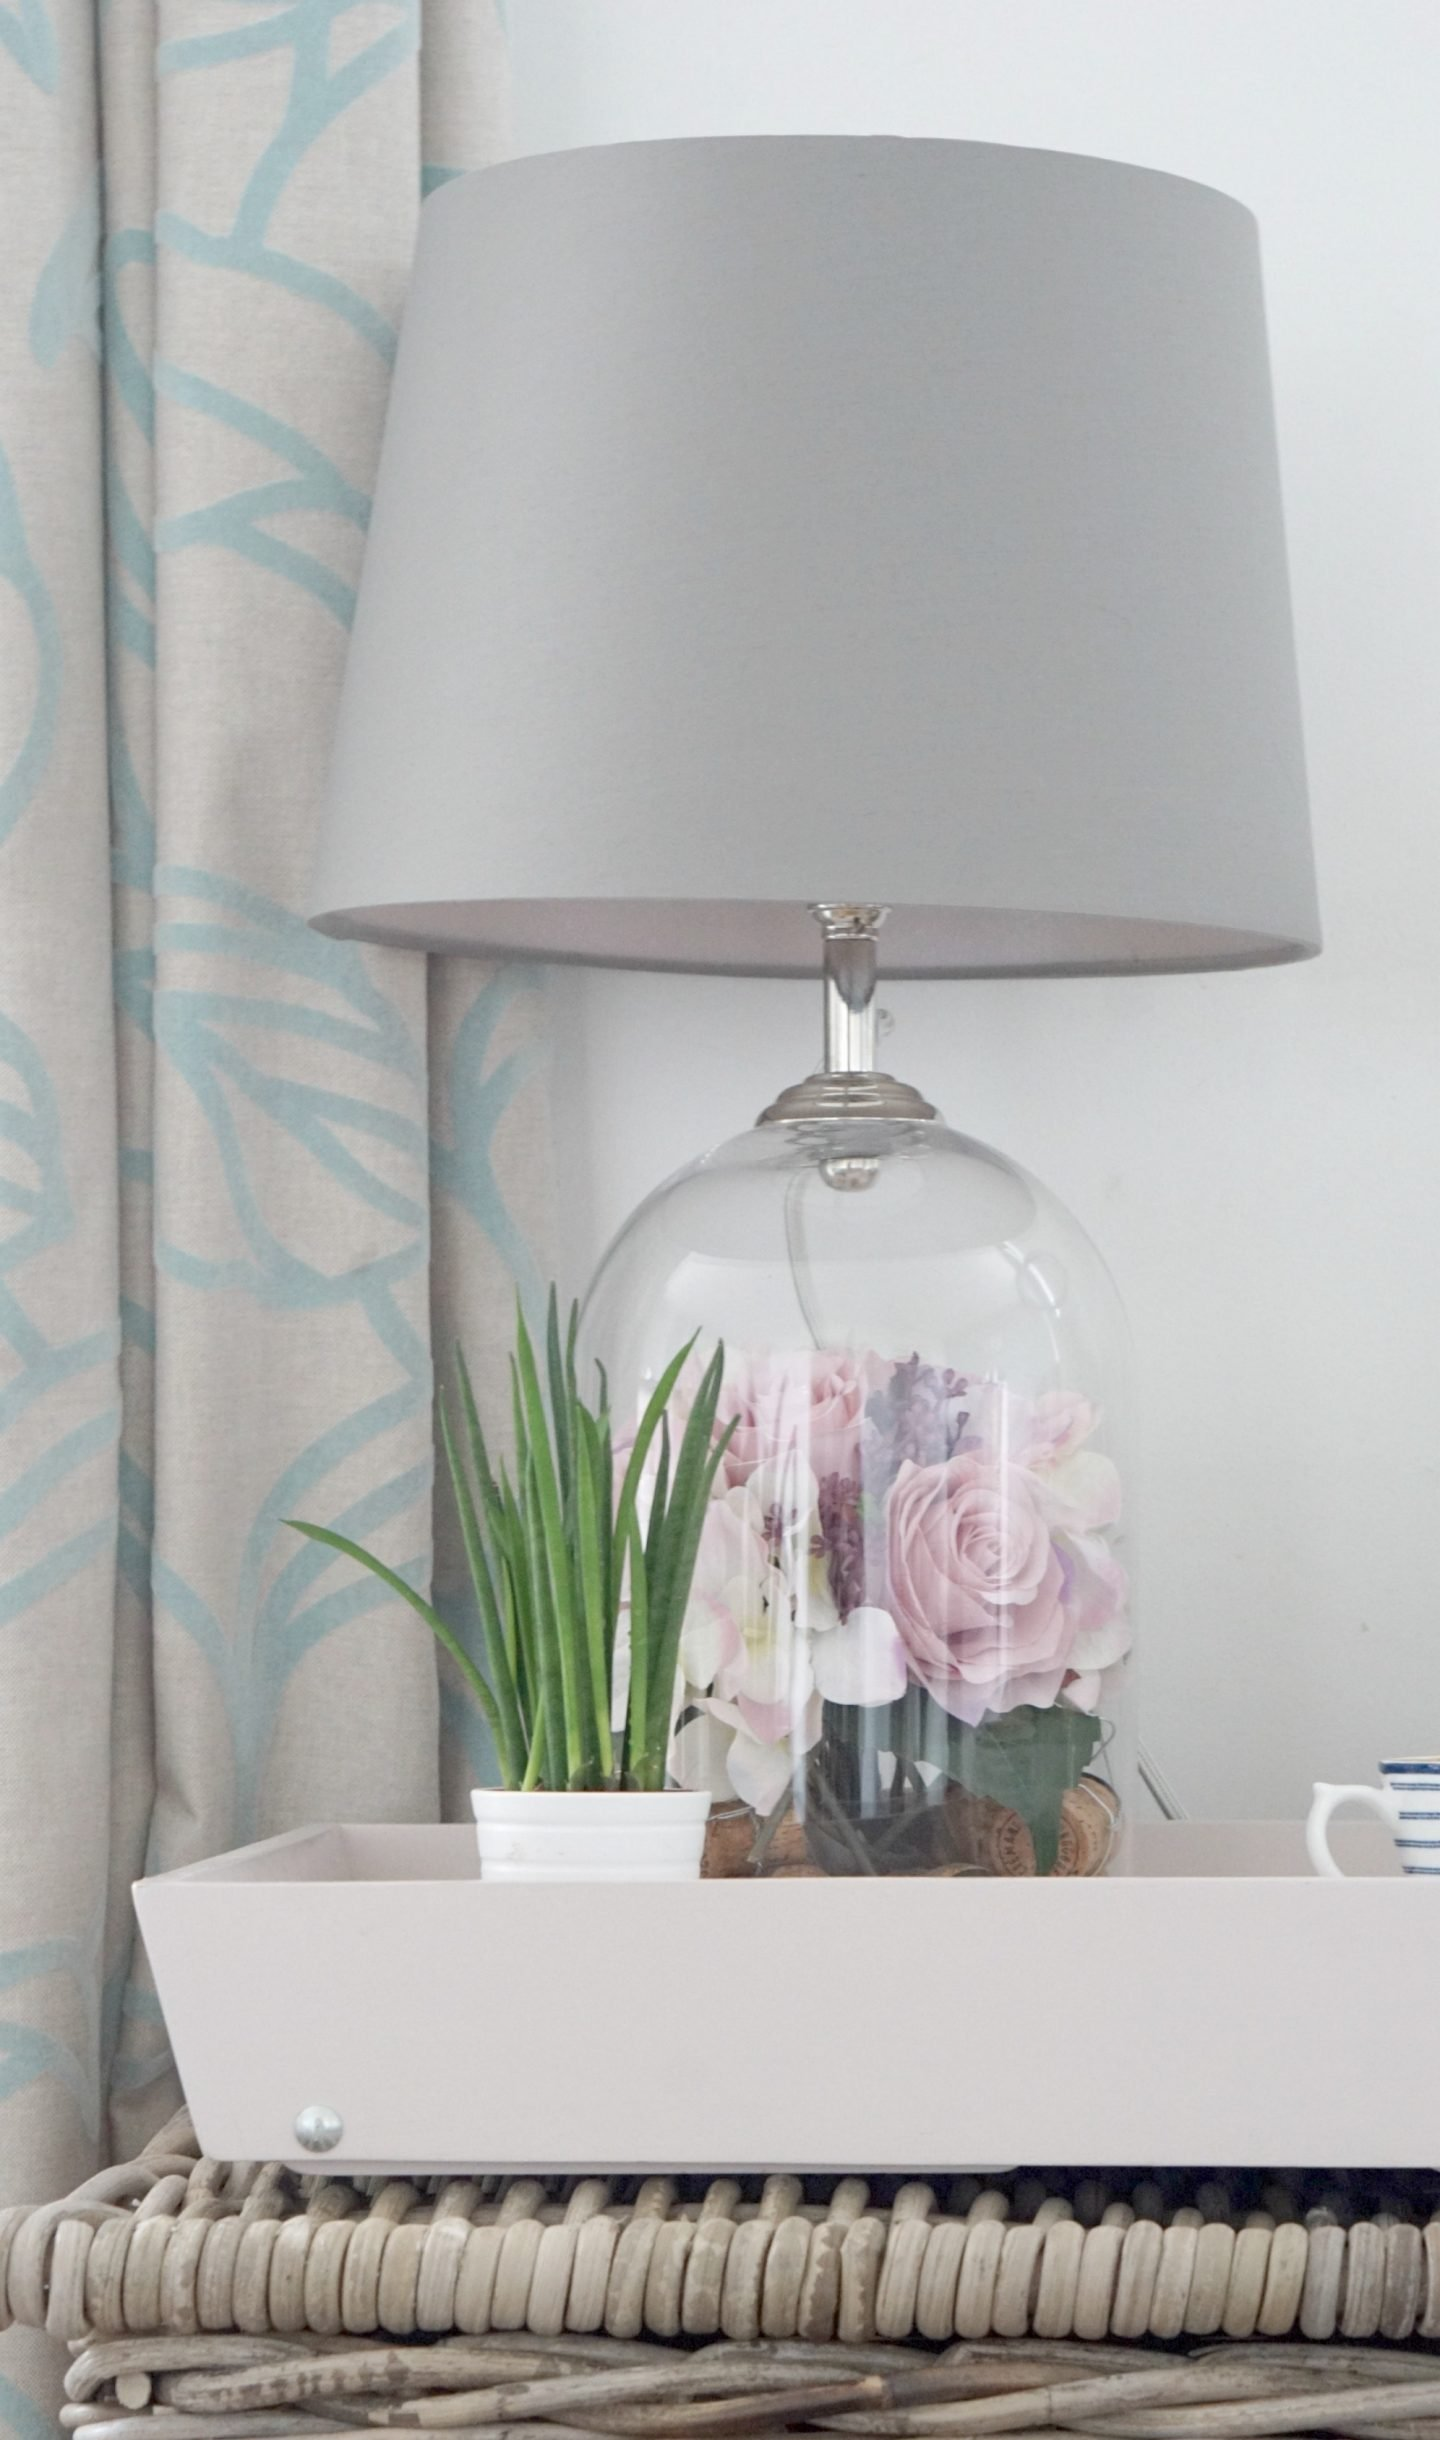 Choosing a shabby chic style for you home and how to choose a decor that is cool but different. And how to make a rustic coffee table with a wicker basket, decorated with a dome lamp and realistic looking artificial flowers.